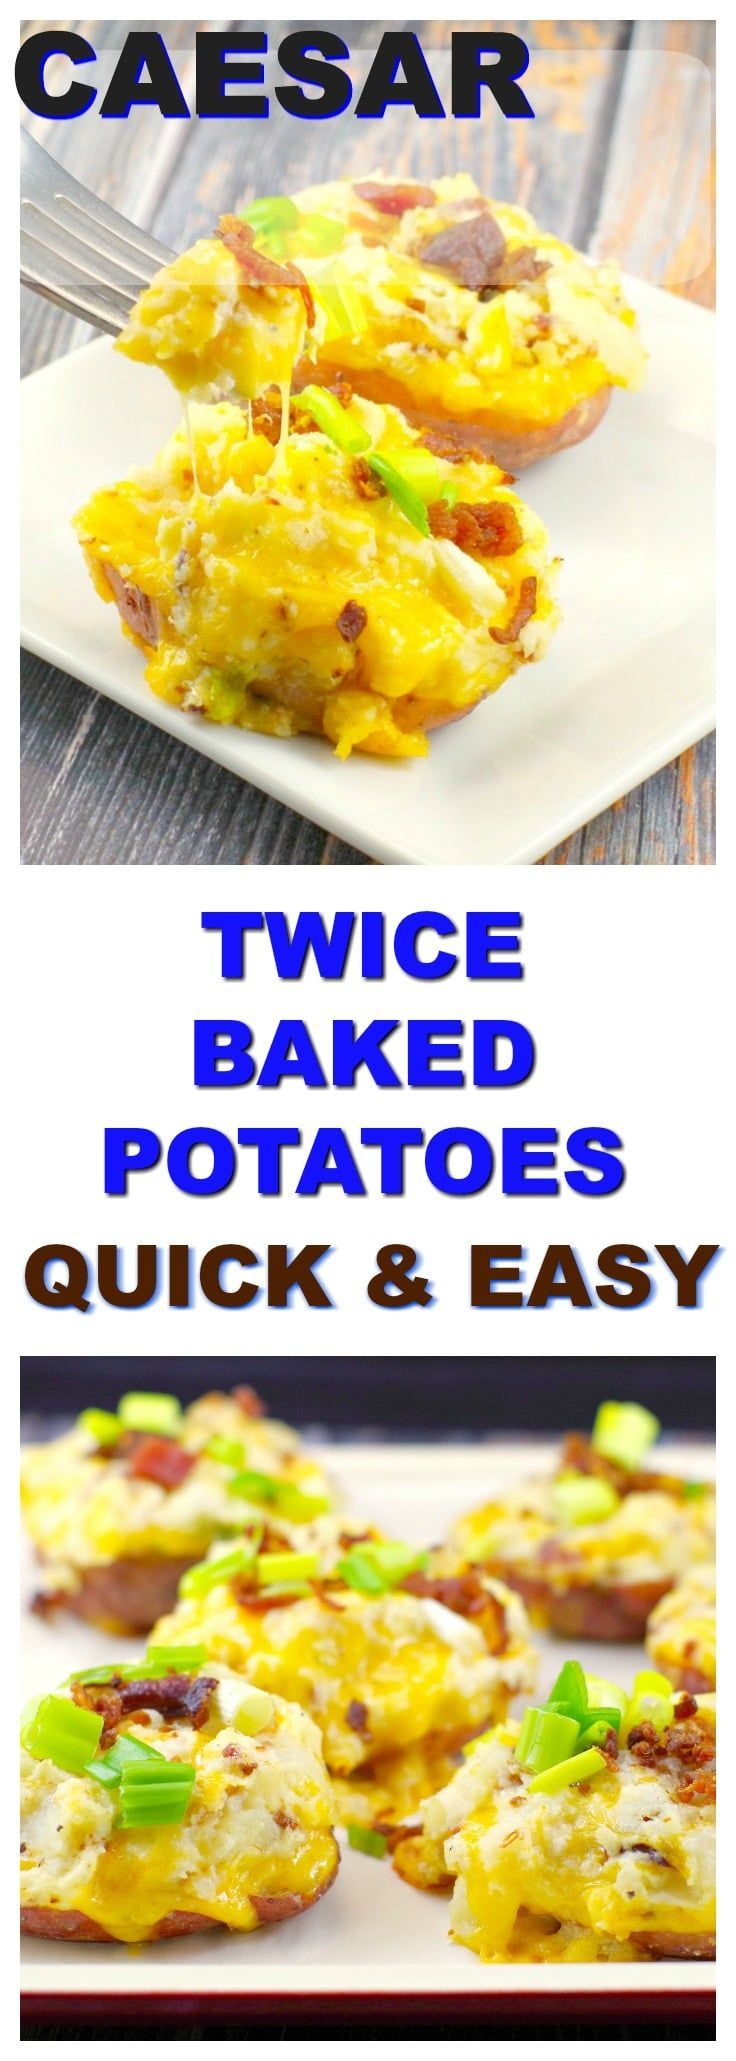 Quick & Easy Caesar Twice Baked Potatoes   #potatorecipes #potato - Foodmeanderings.com These caesar twice baked potatoes (stuffed potatoes) are quick and easy, as well as a great way to use up leftover baked potatoes!